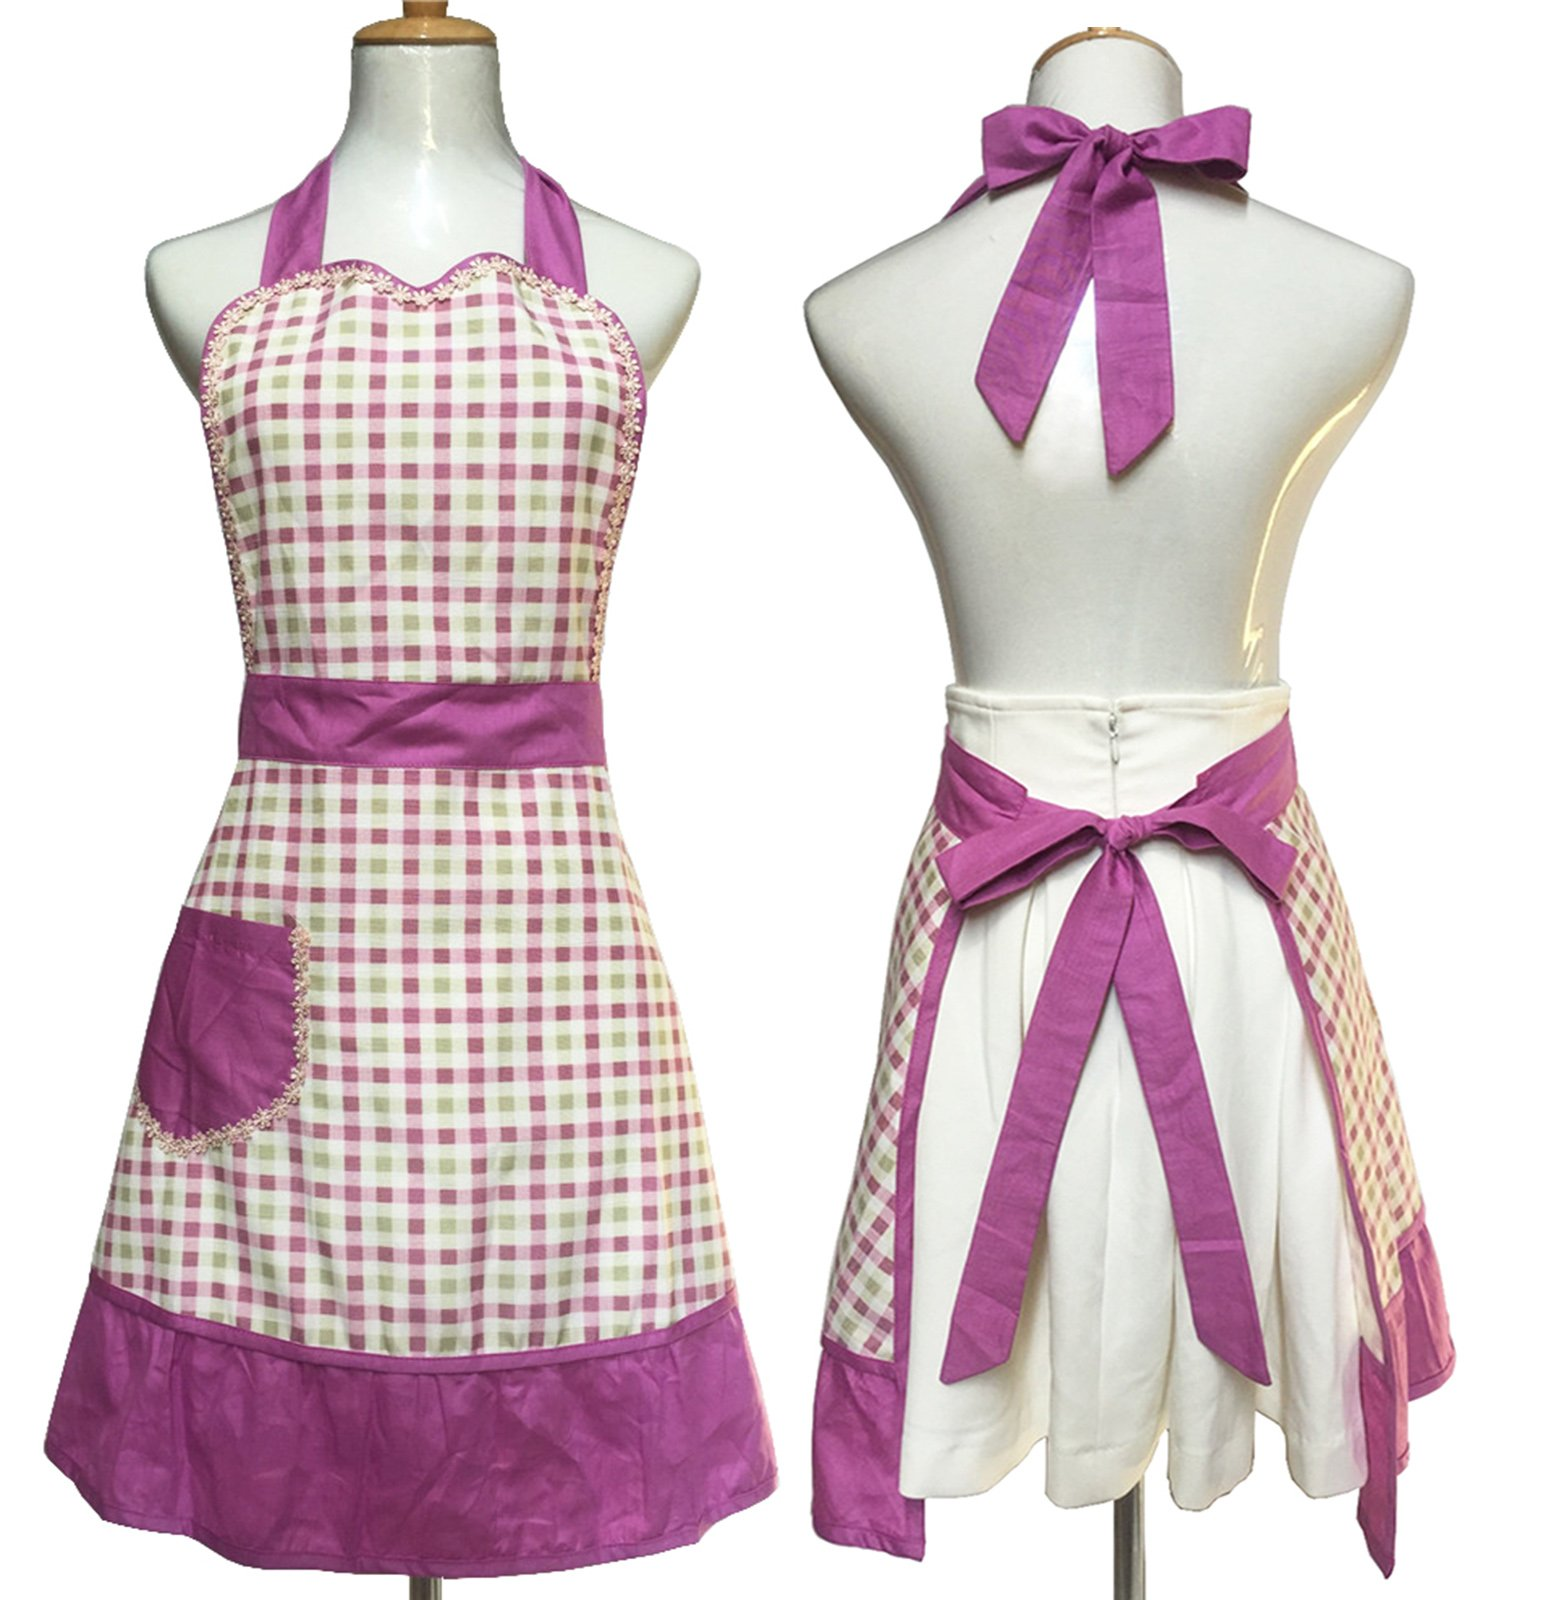 Lovely Sweetheart Retro Kitchen Aprons Woman Girl Cotton Cooking Salon Pinafore Vintage Apron Dress with Pocket,Purple